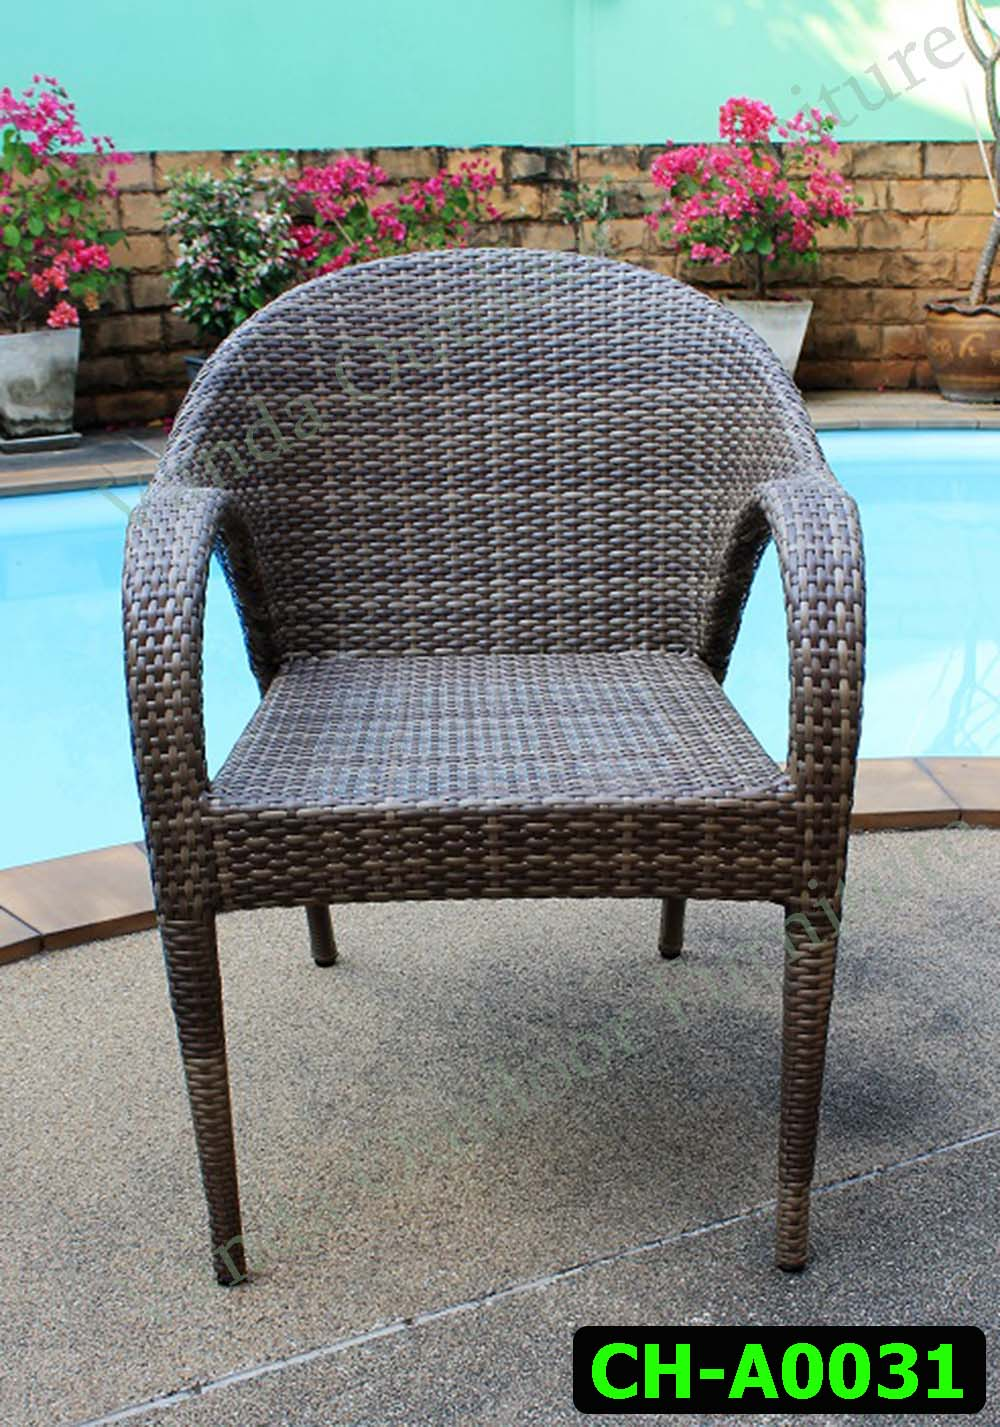 Rattan Chair Product code CH-A0031